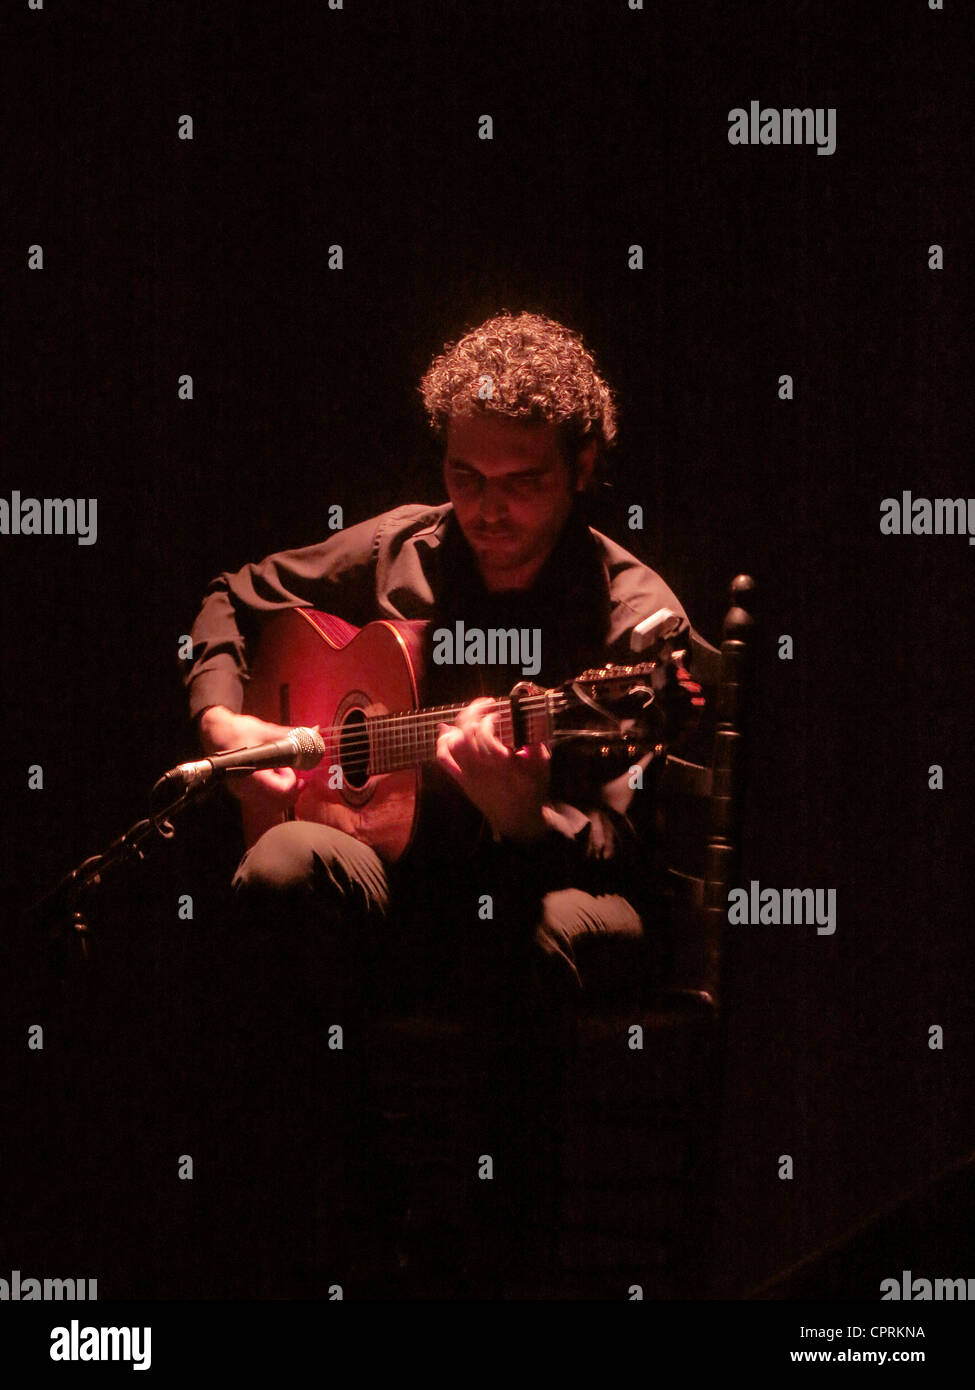 Flamenco guitar player Seville Andalusia Spain - Stock Image